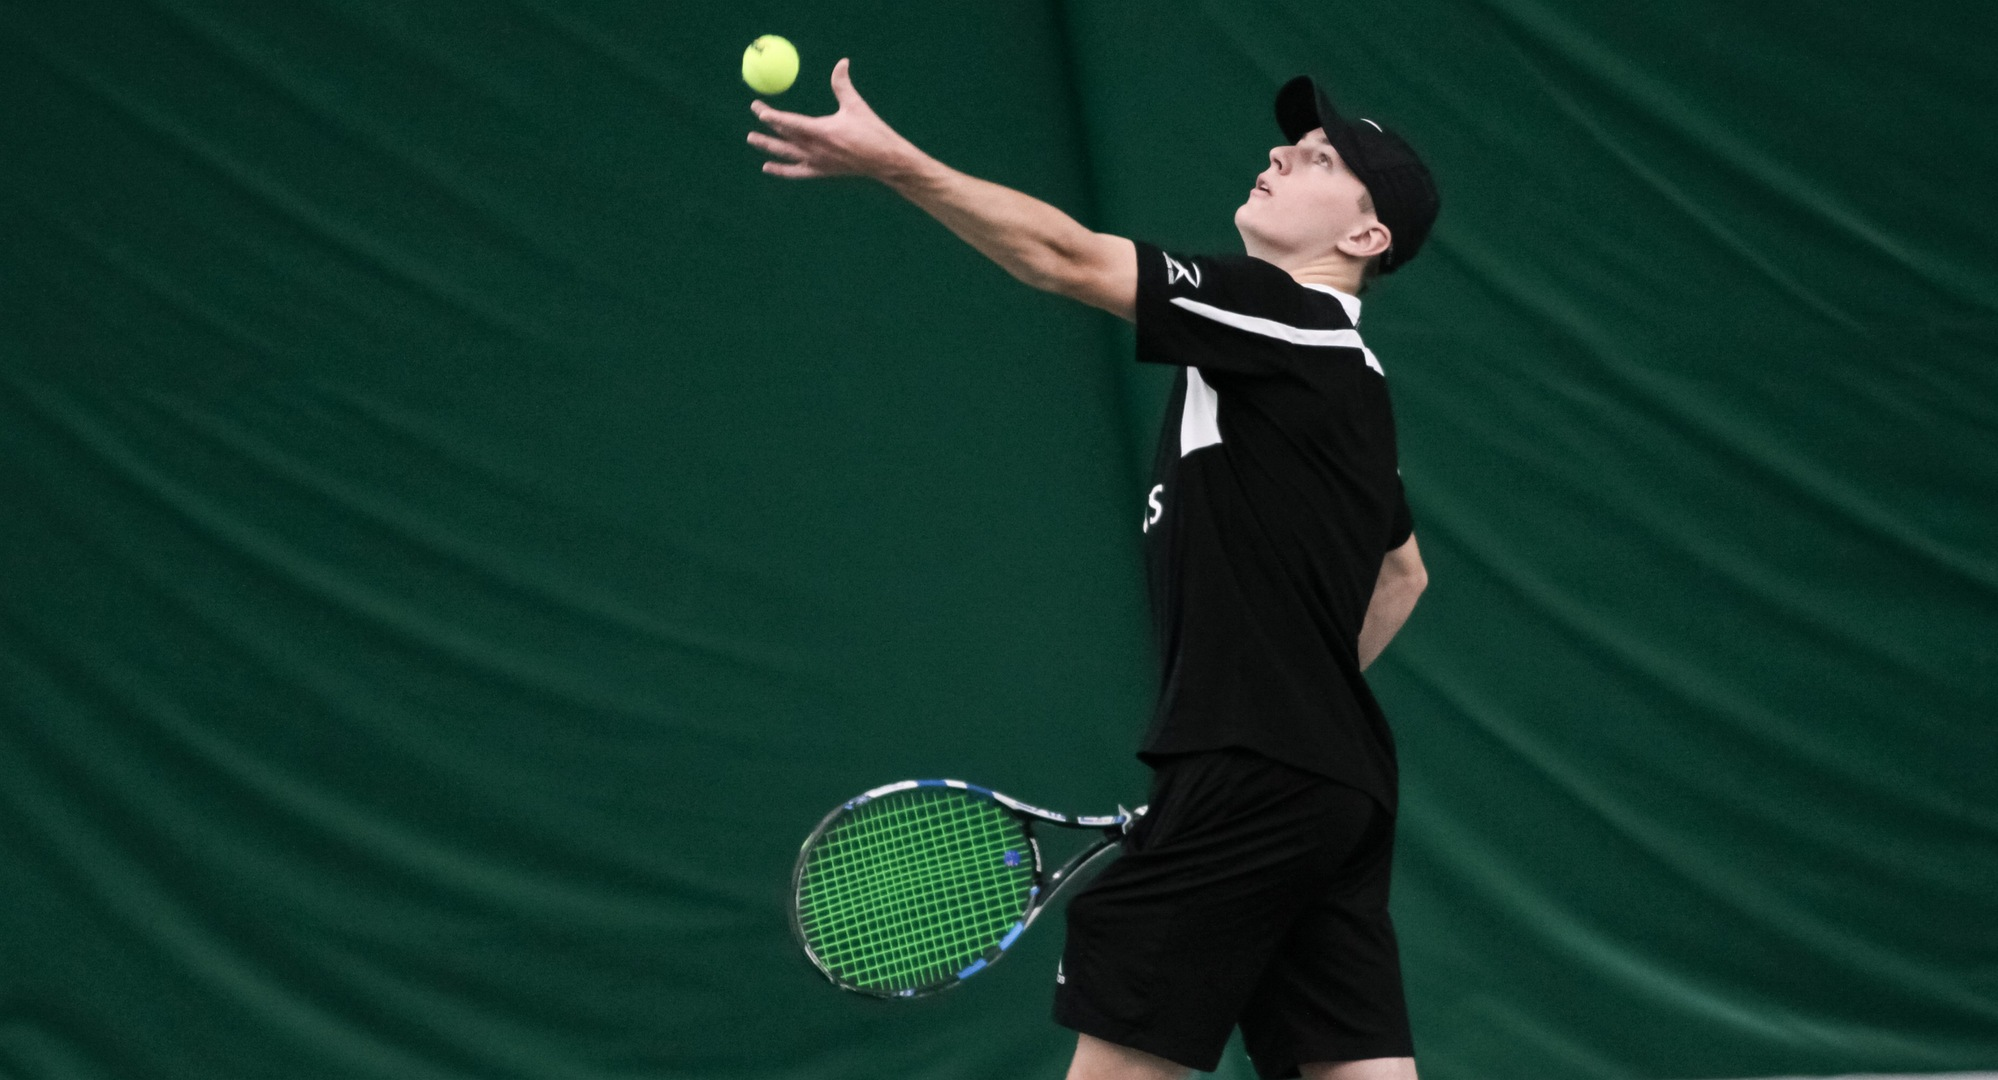 Terry & Phillips Pick Up Singles Wins In Setback At Butler